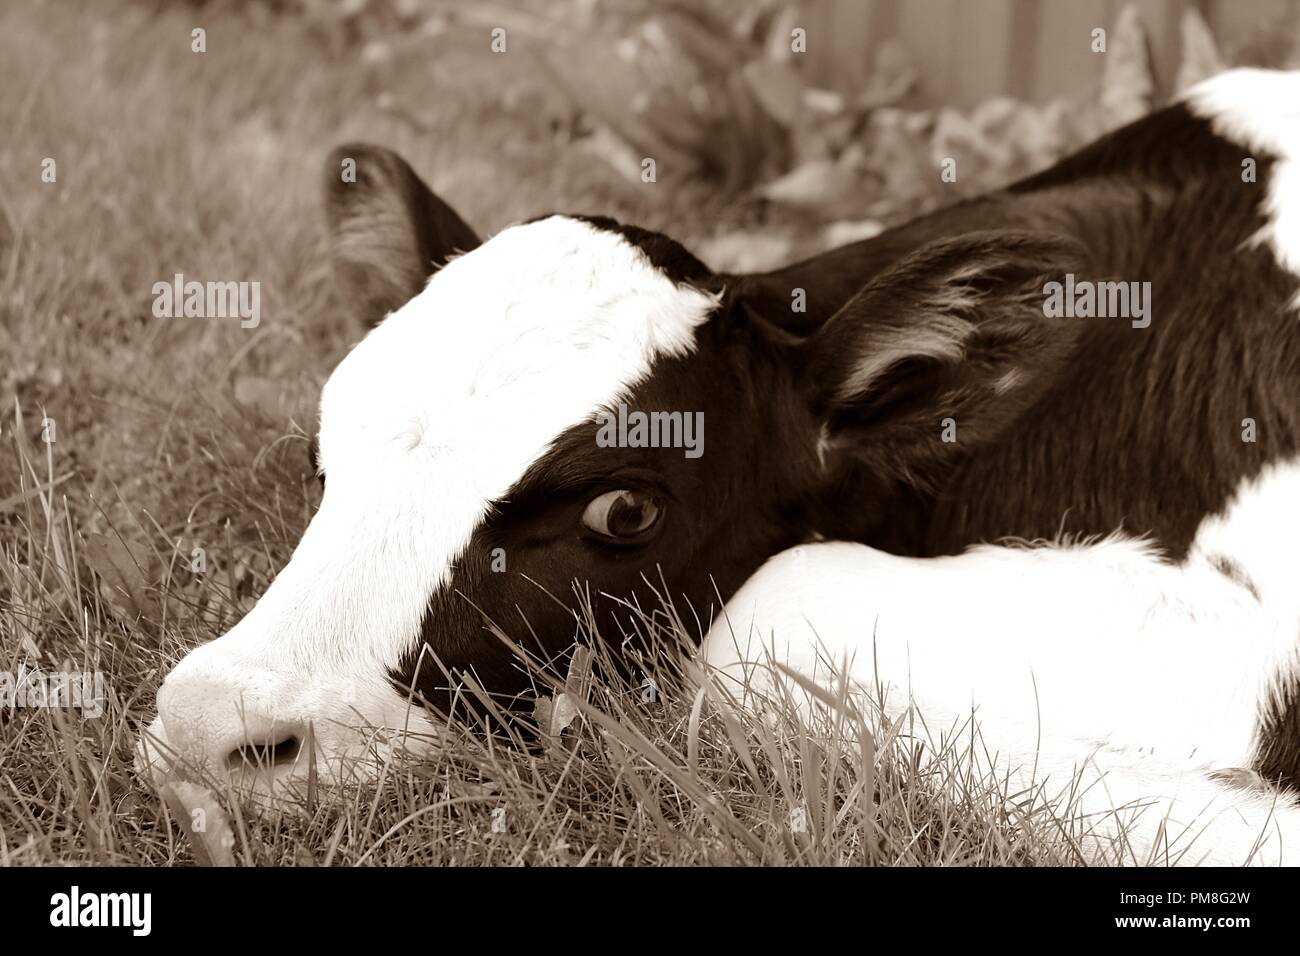 Newborn Holstein calf in sepia tones - Stock Image